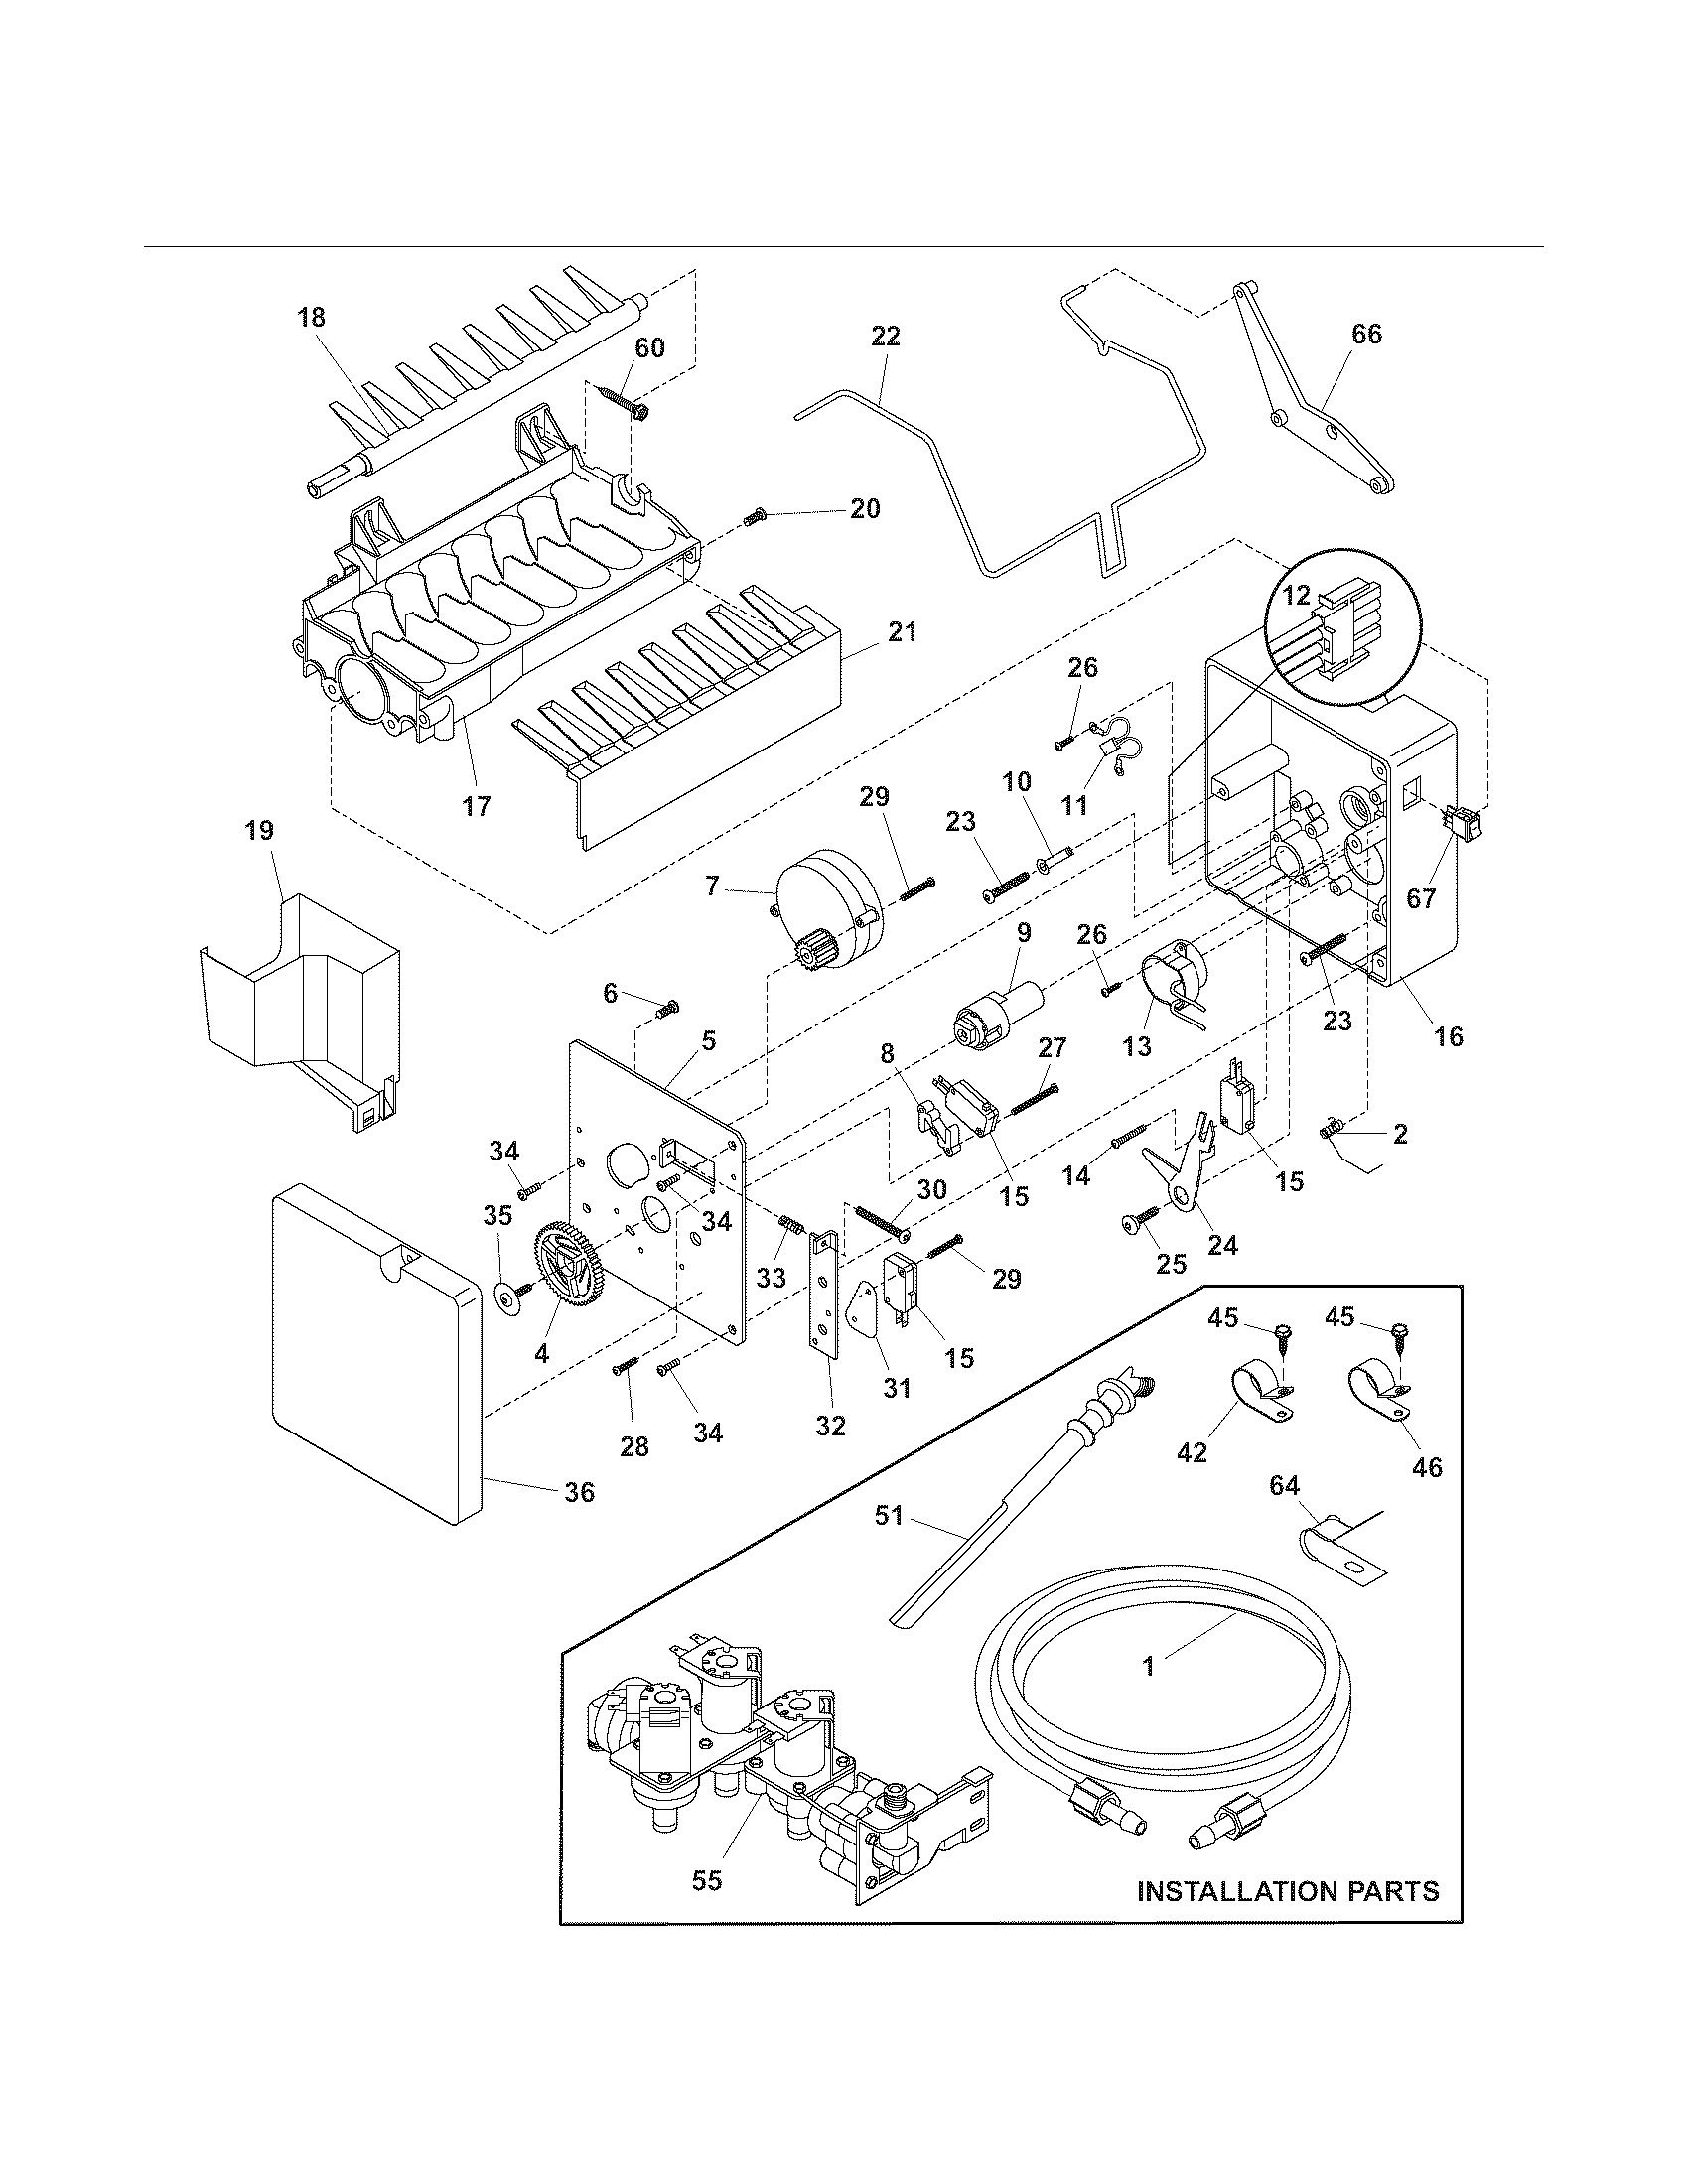 ICE MAKER Diagram & Parts List for Model 25354663405